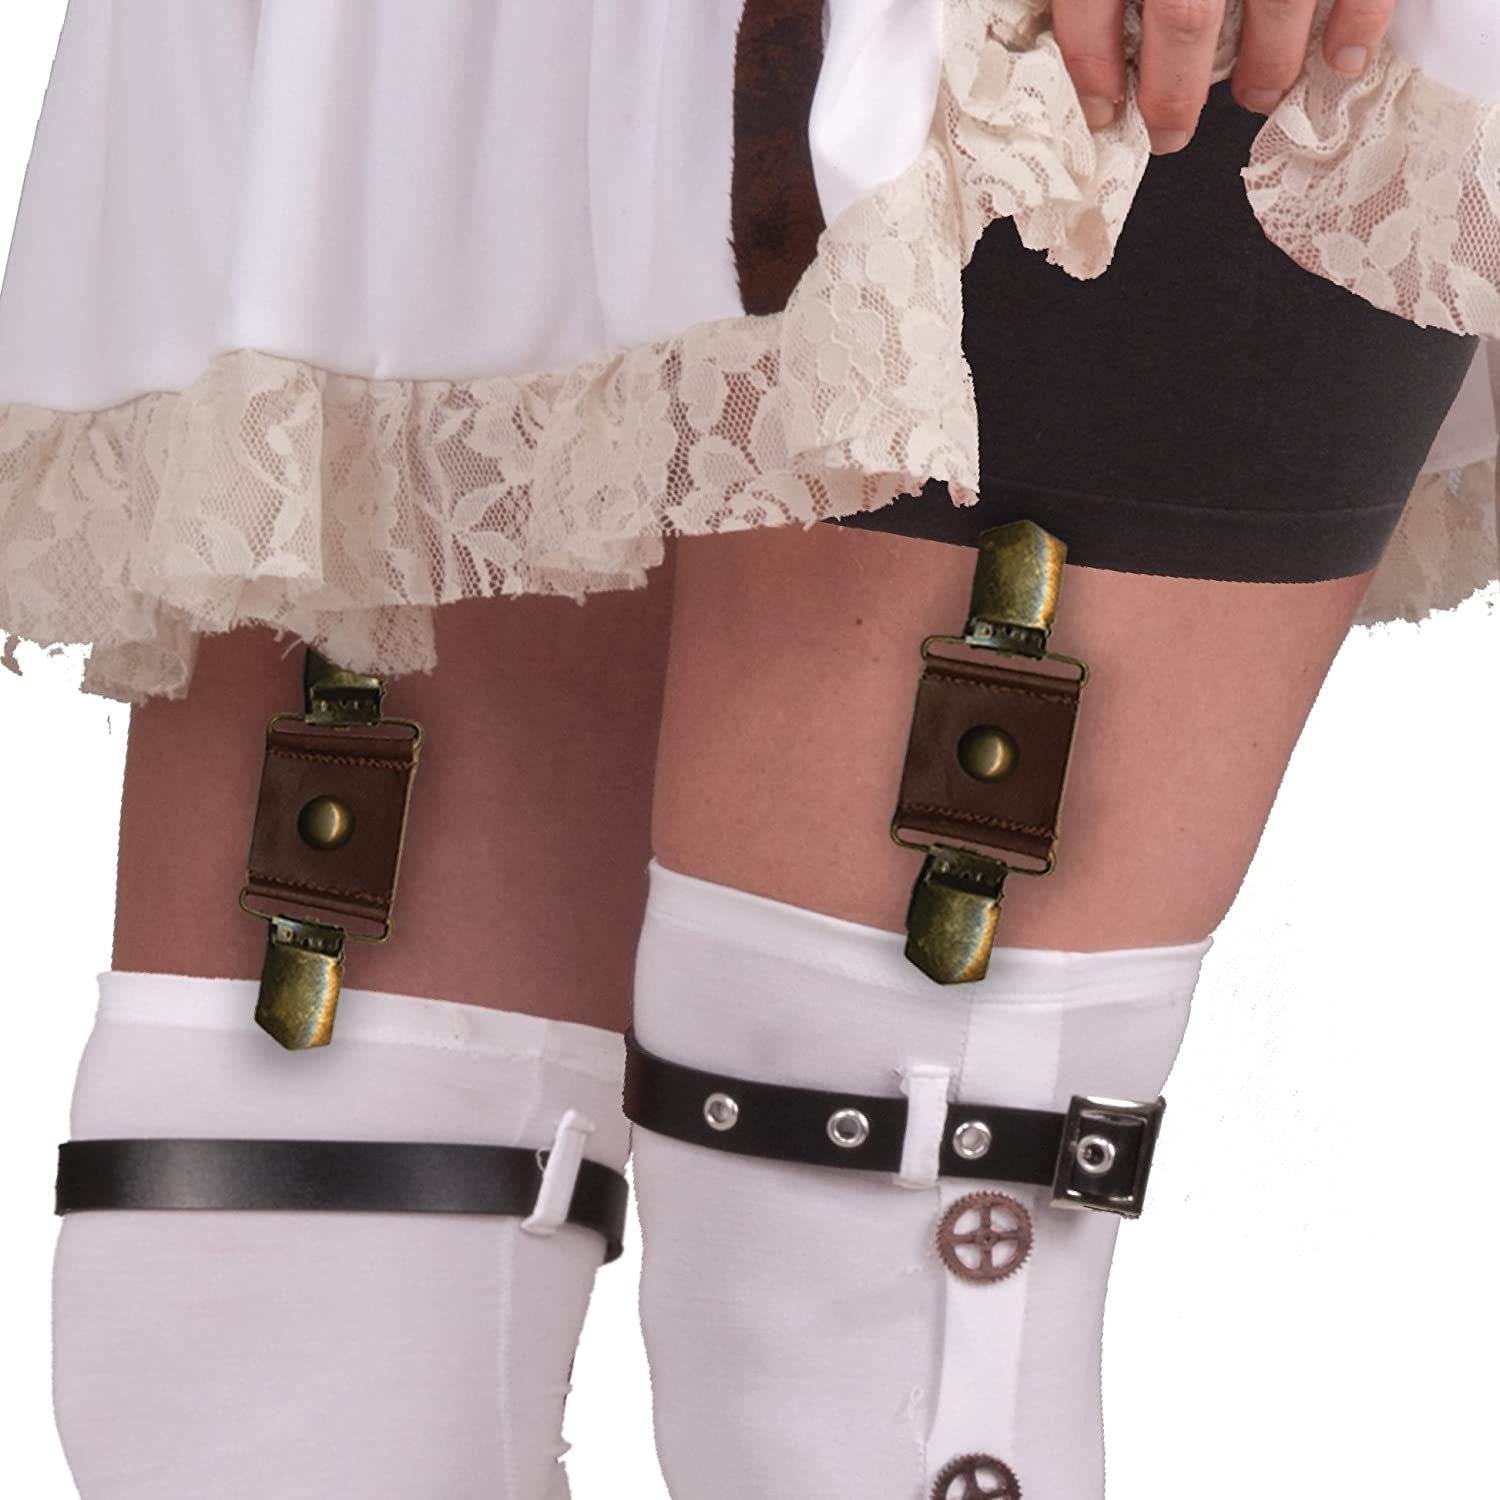 Steampunk Tights  & Socks Forum Novelties Womens Steampunk Garter Buckles $7.33 AT vintagedancer.com